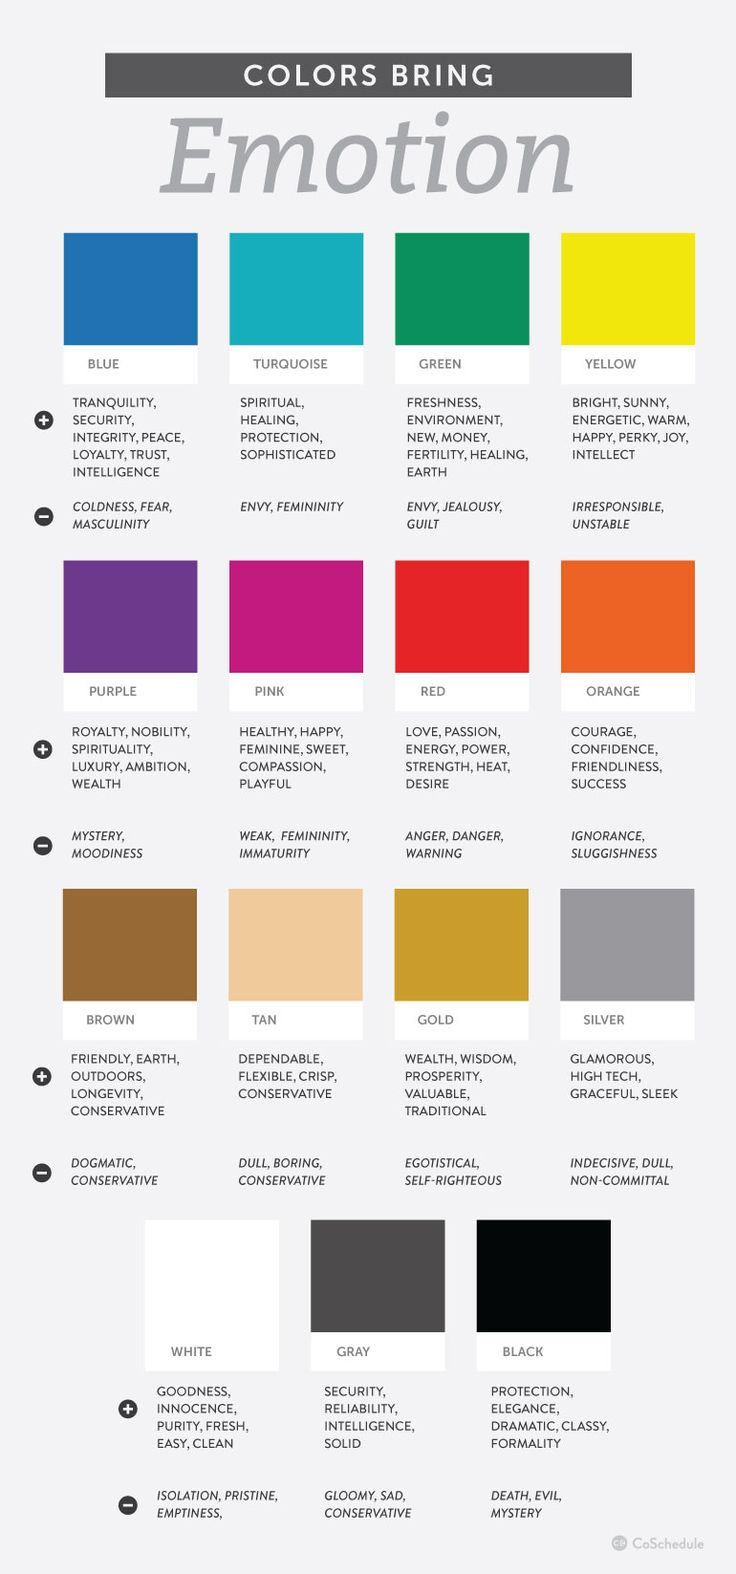 Color Psychology In Marketing: The Complete Guide [Free Download] There are a few generalized understandings of what specific colors often mean to a large cross-section of people, with each color having negative and positive emotions associated with it. design tools life hacks facts